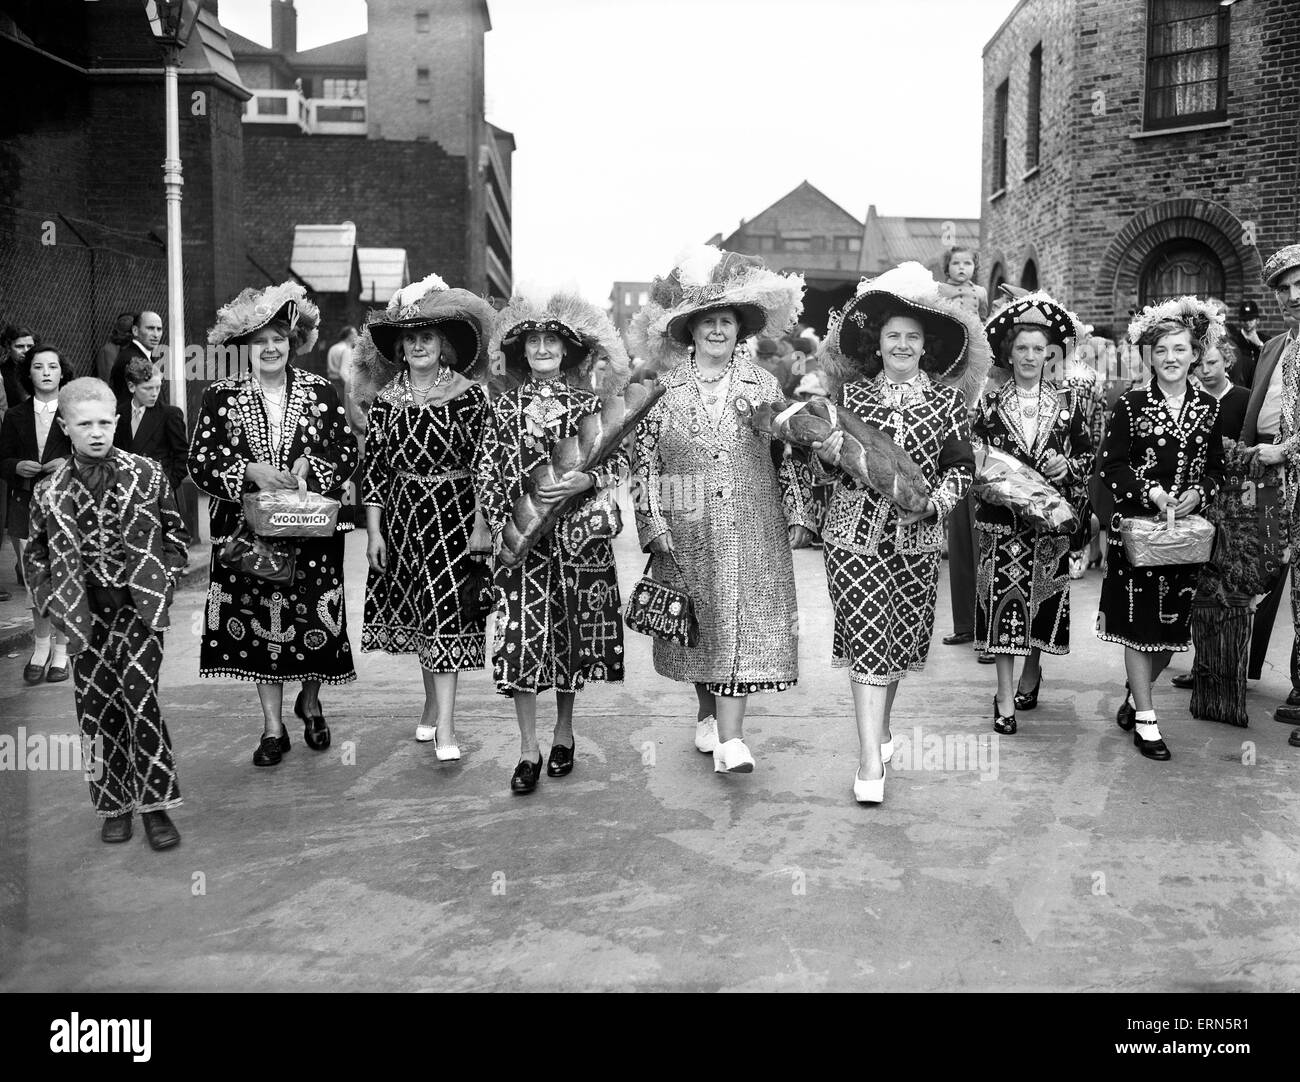 Costers Thanksgiving Service, London, 3rd October 1954. - Stock Image